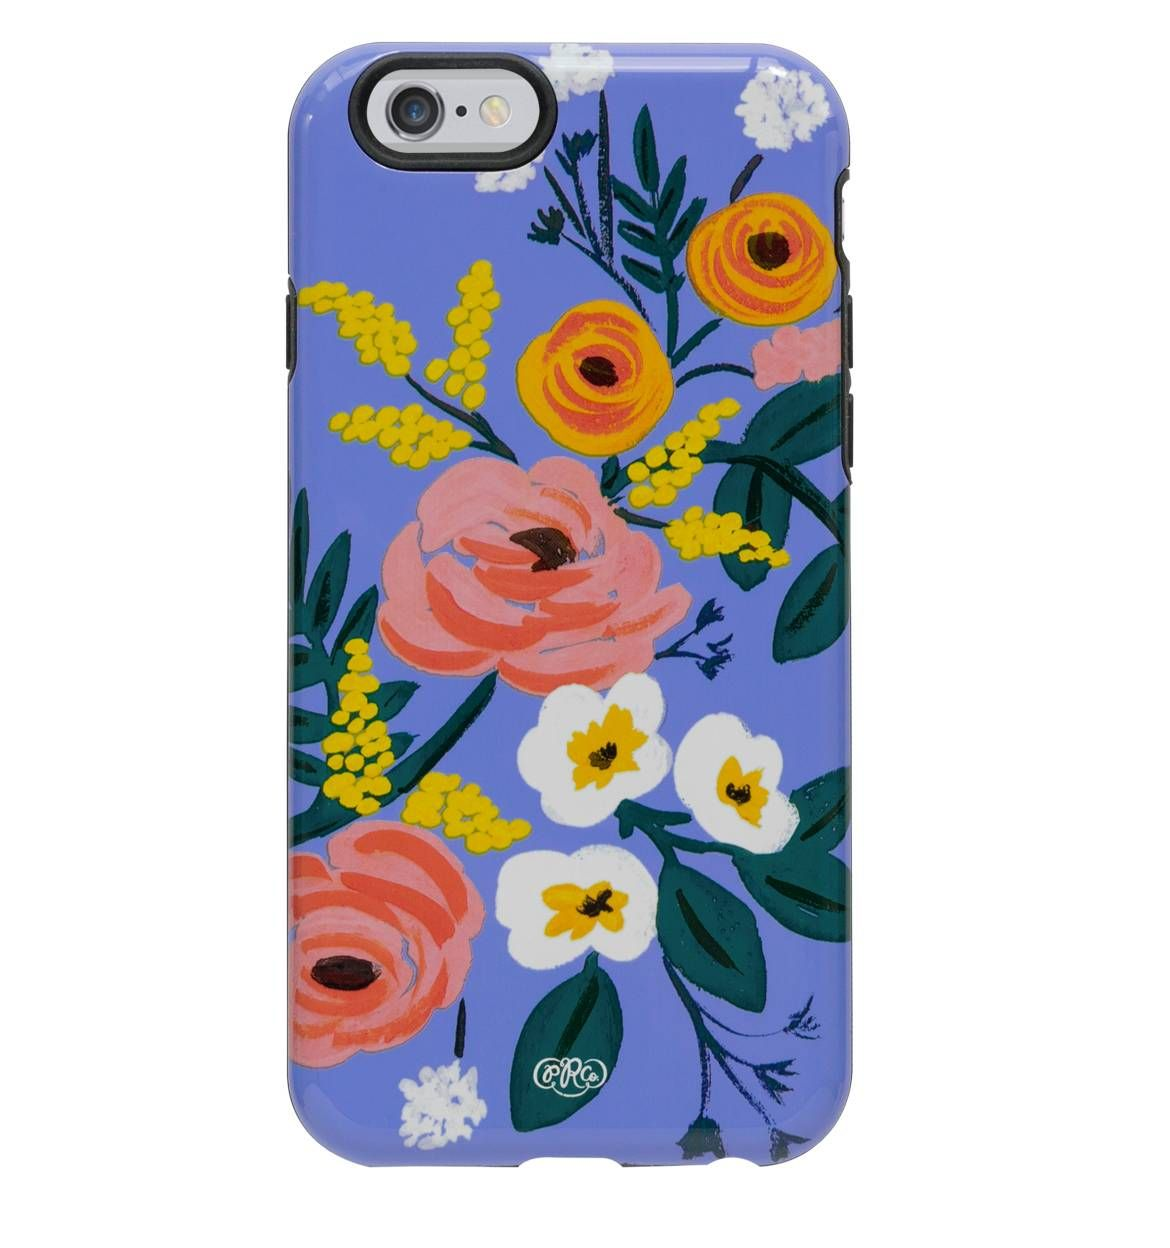 Rifle Paper Co  Violet Floral  Protective Iphone Cover  Prints